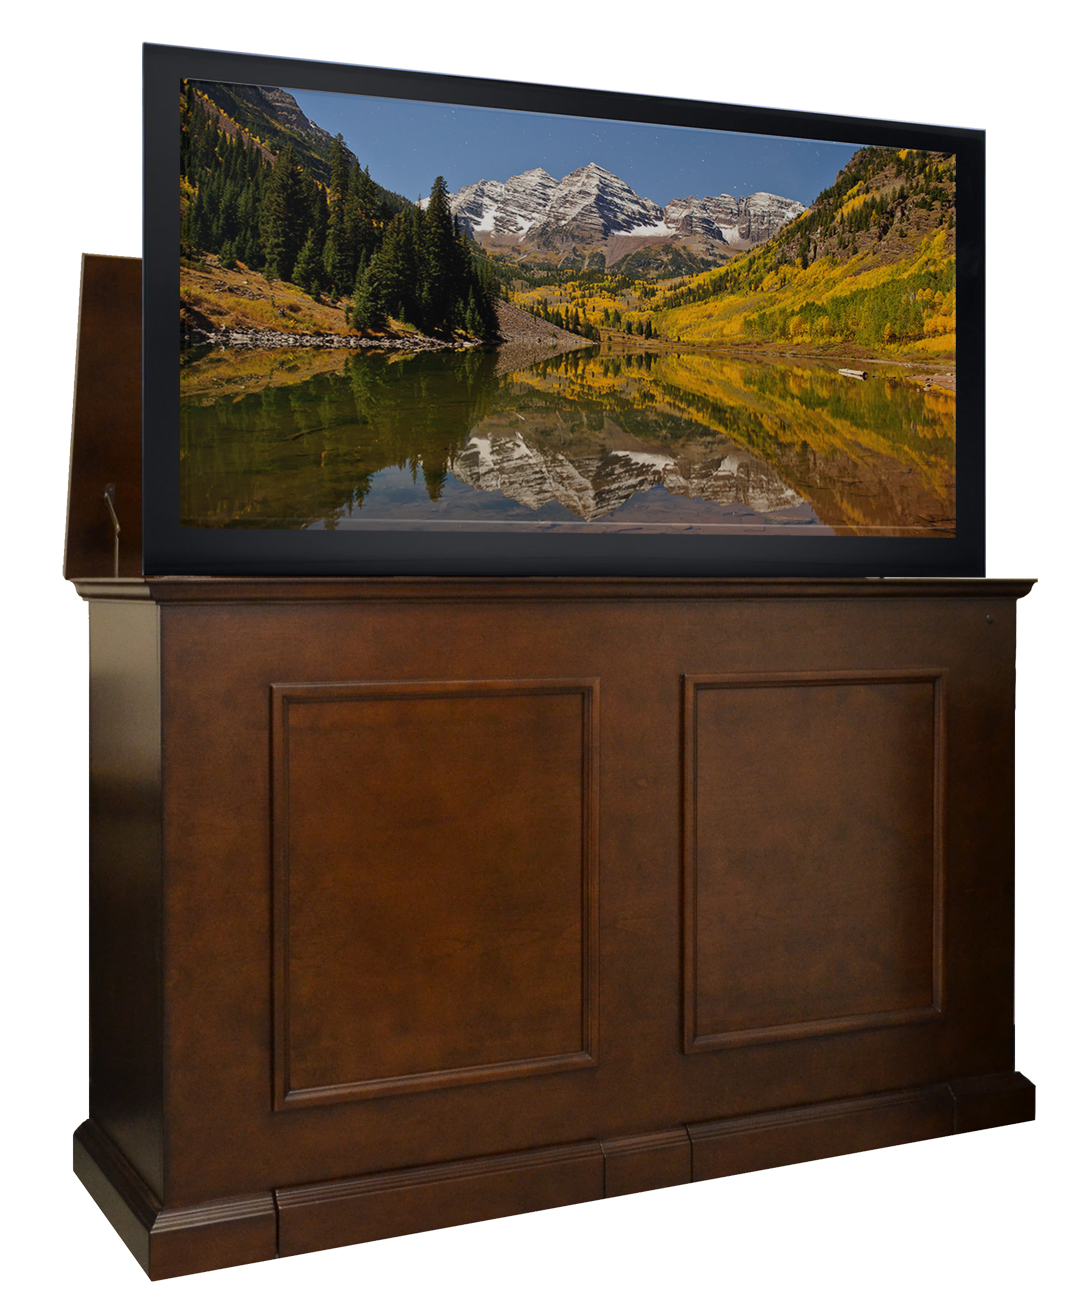 grand elevate espresso tv lift cabinet for flat panel tvs. Black Bedroom Furniture Sets. Home Design Ideas